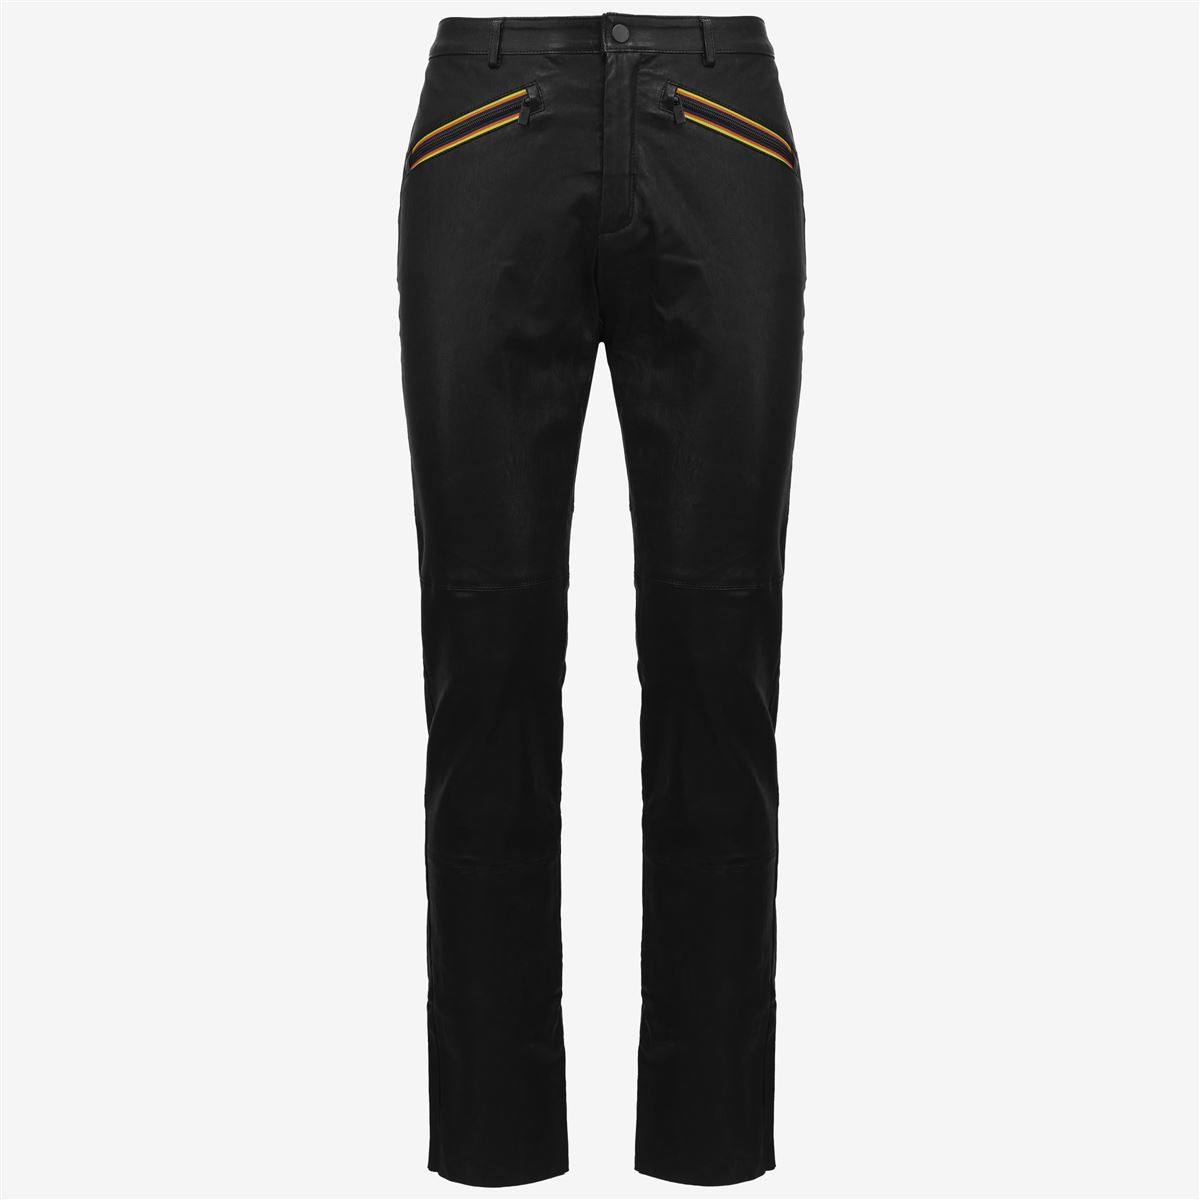 K-Way Pantaloni LUPIN KL STRETCH Sportivo Uomo